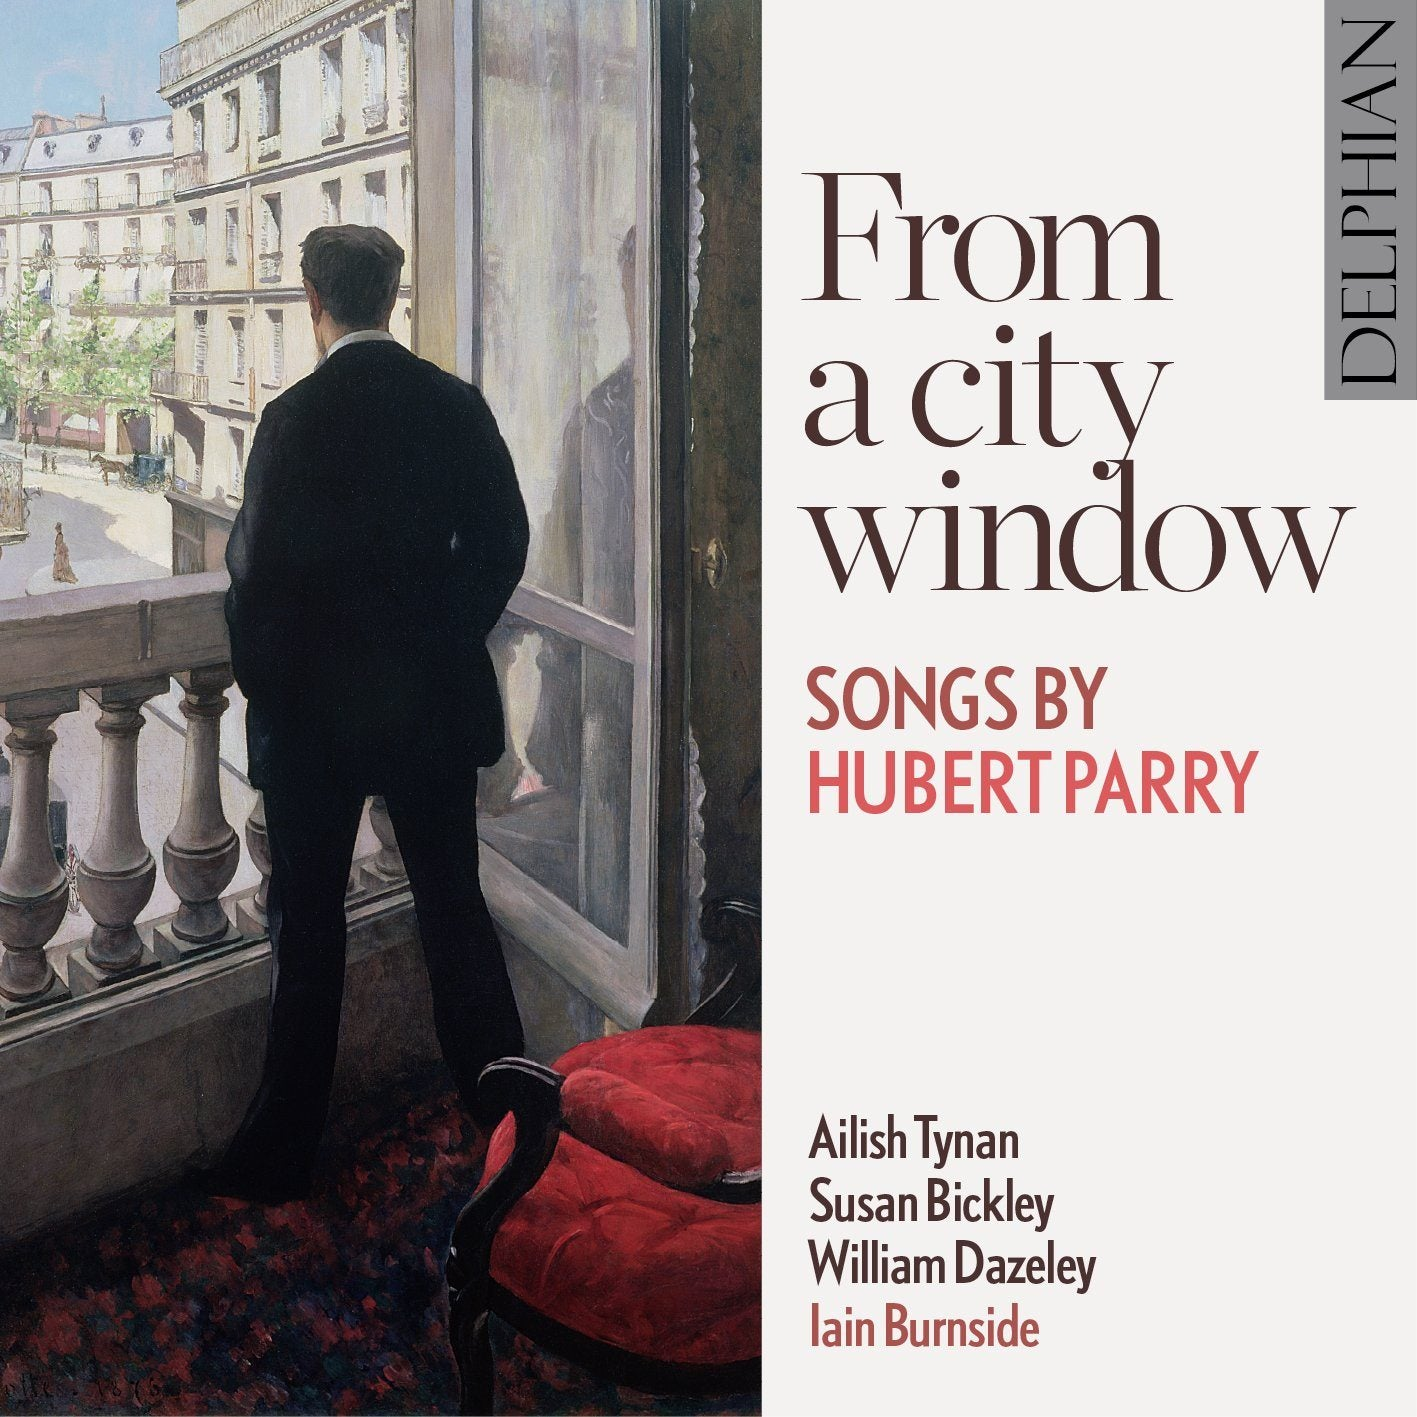 From a city window: songs by Hubert Parry CD Delphian Records